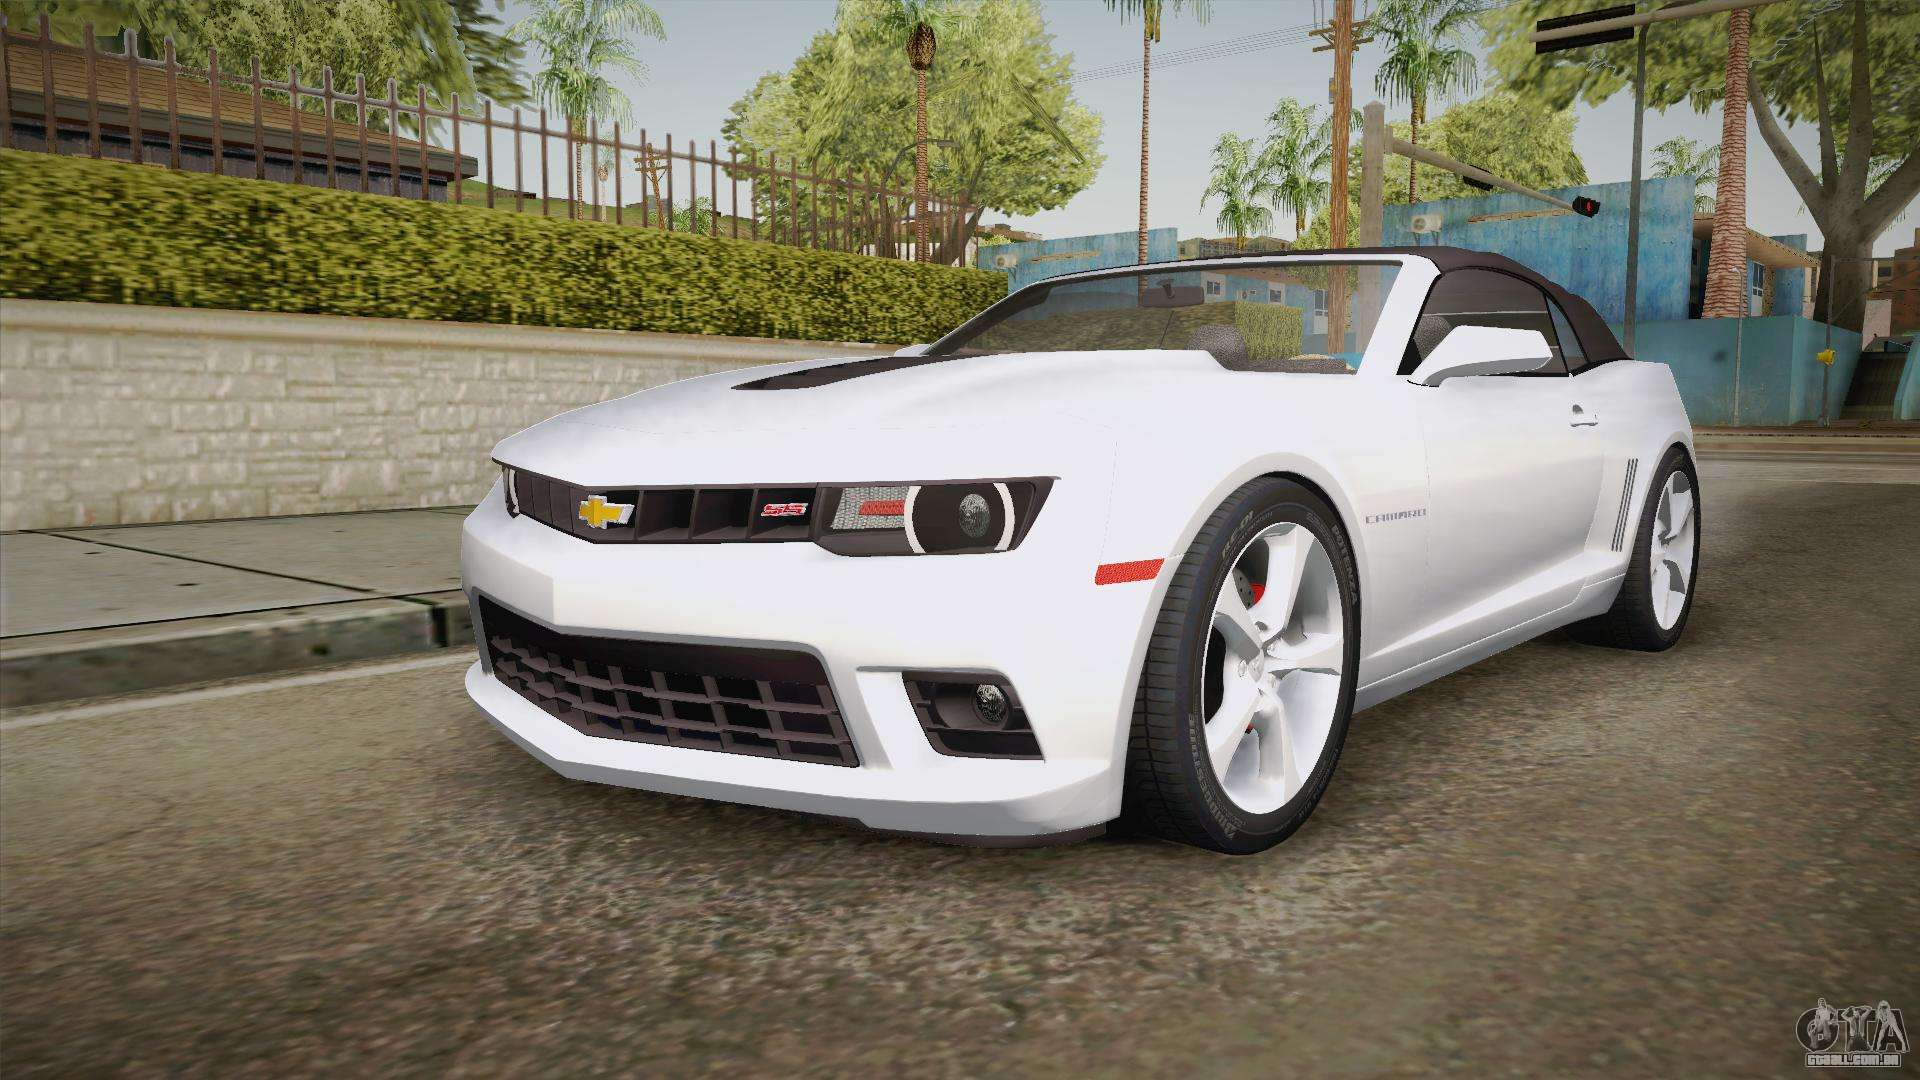 camaro amarelo gta san andreas pc